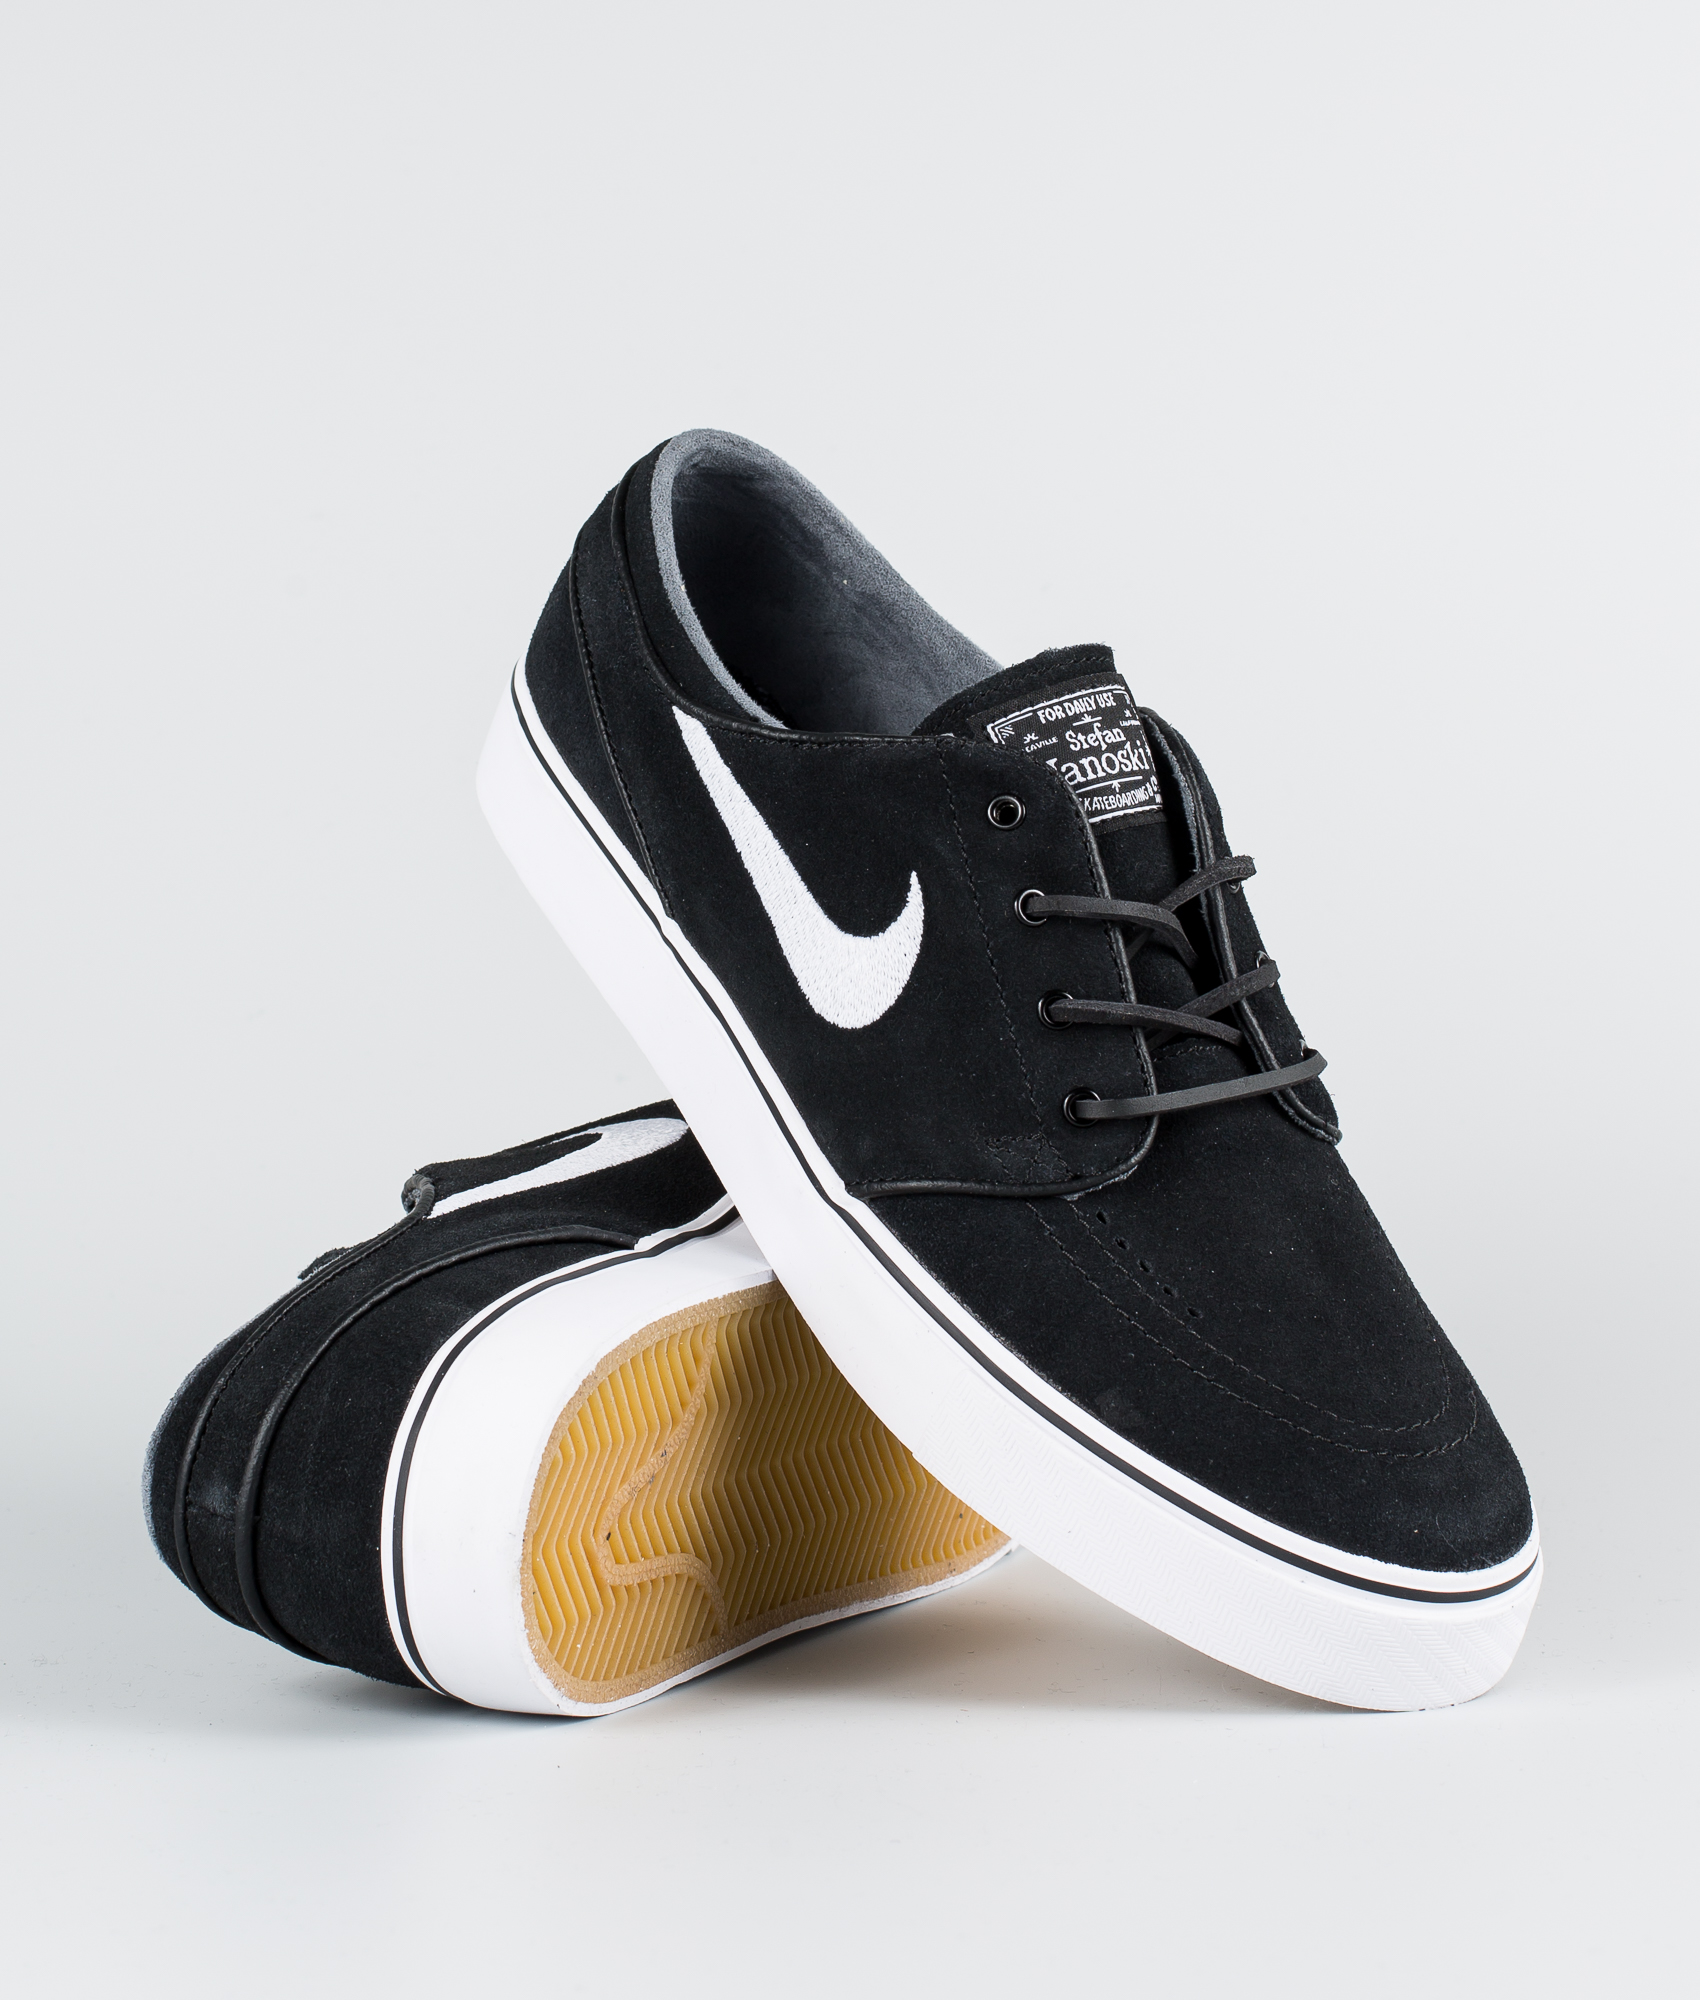 livraison gratuite 15bb9 d952f Nike Zoom Stefan Janoski Og Shoes Black/White-Gum Light Brown